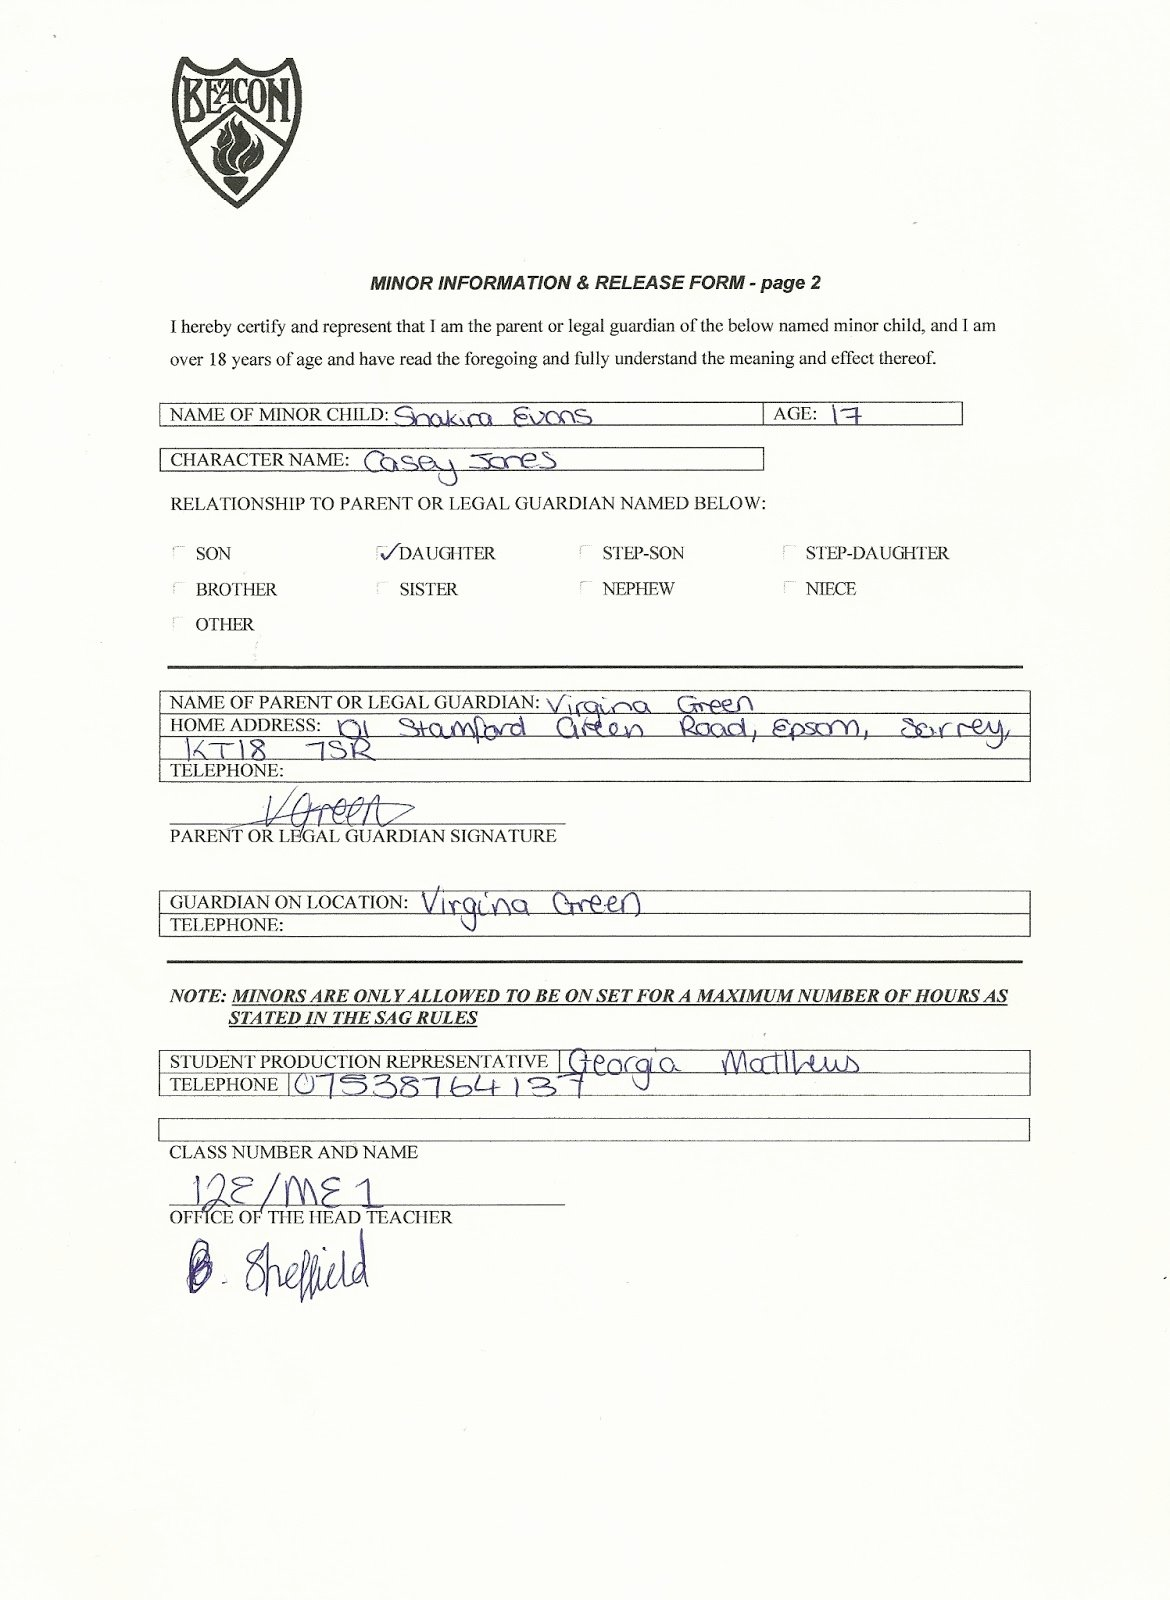 Actor Release form Template Lovely Minor Actor Release form Shakira Evans